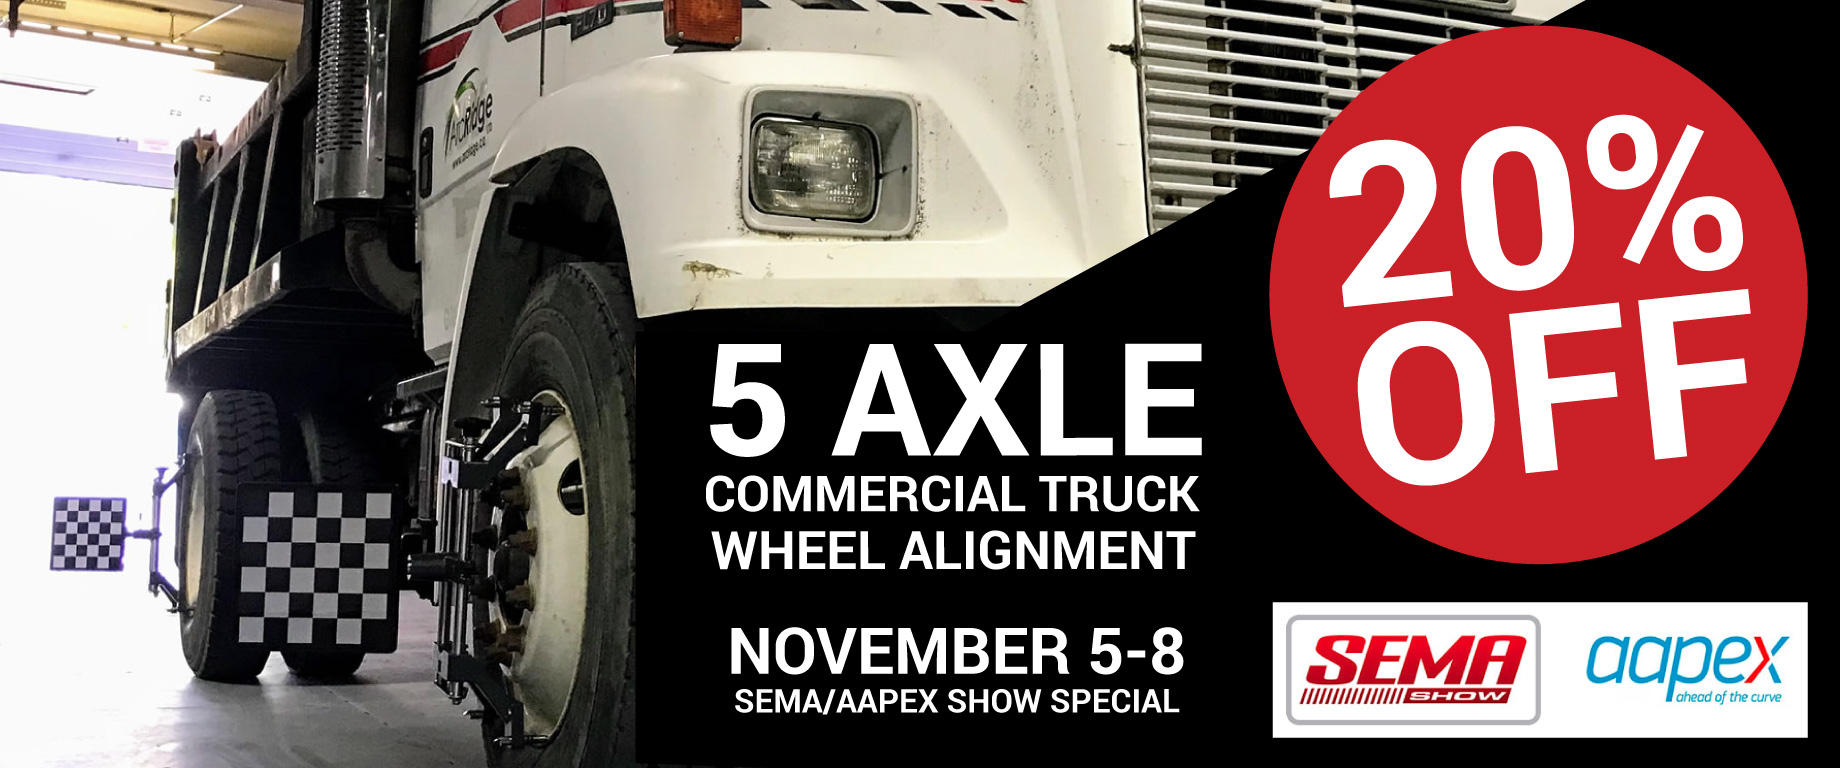 20% Off Manatec 5 Axle Commercial Truck Wheel Alignment System during SEMA/AAPEX 2019